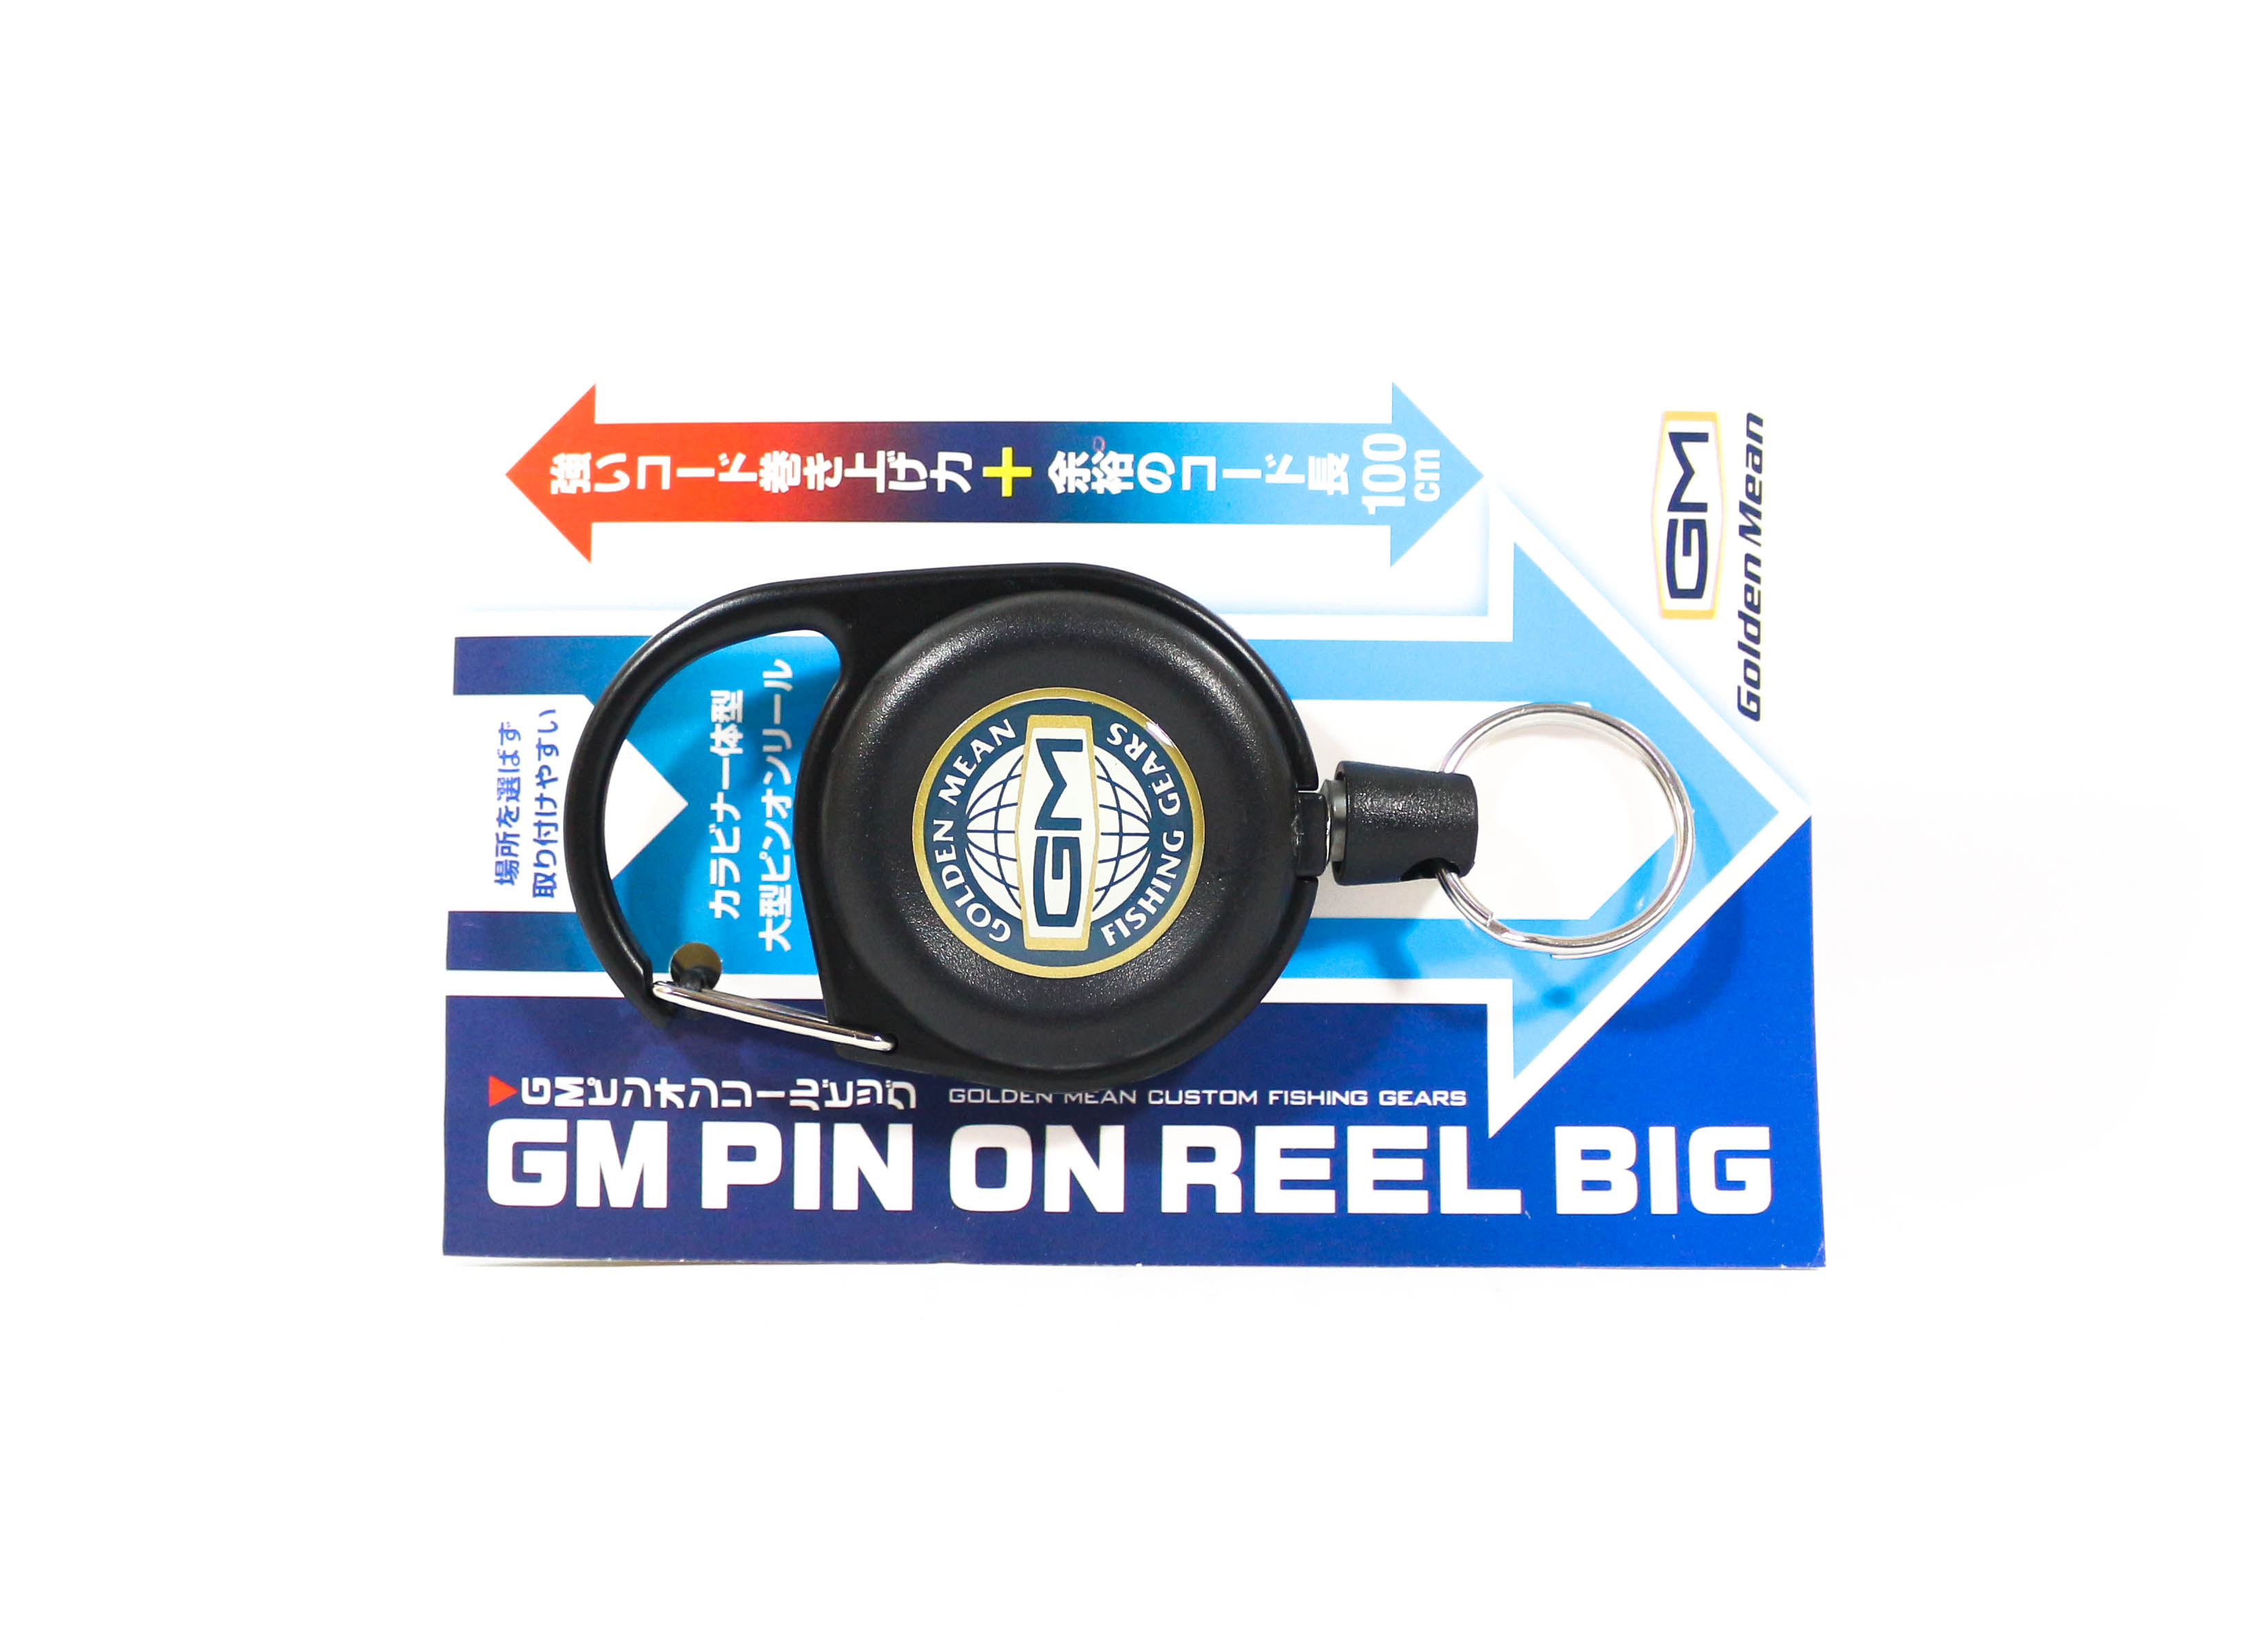 Golden Mean GM Pin on Reel Big Carabina 100cm Black (6167)